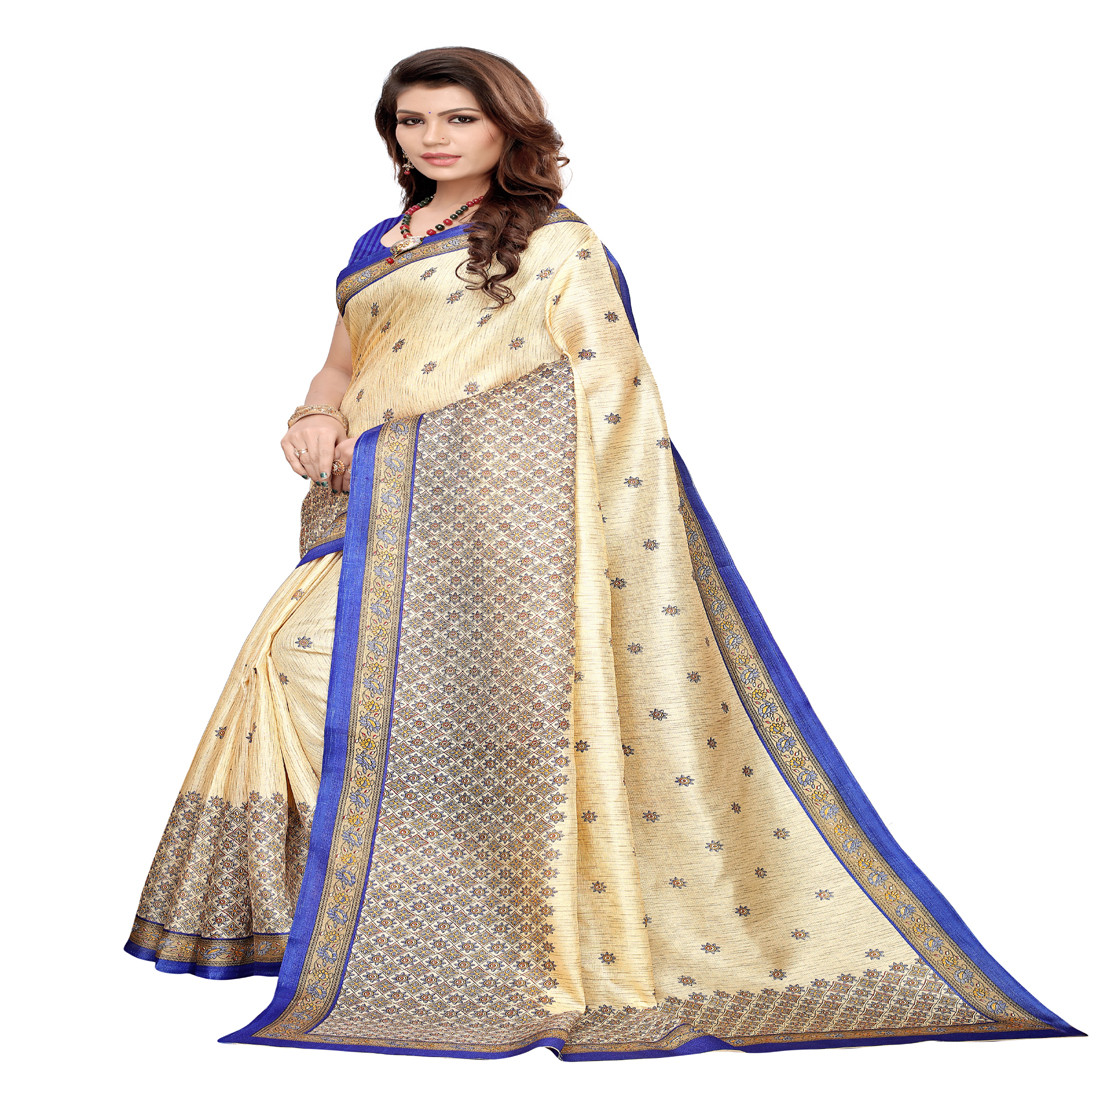 Designer Khadi Silk Blue Border Chiku Saree